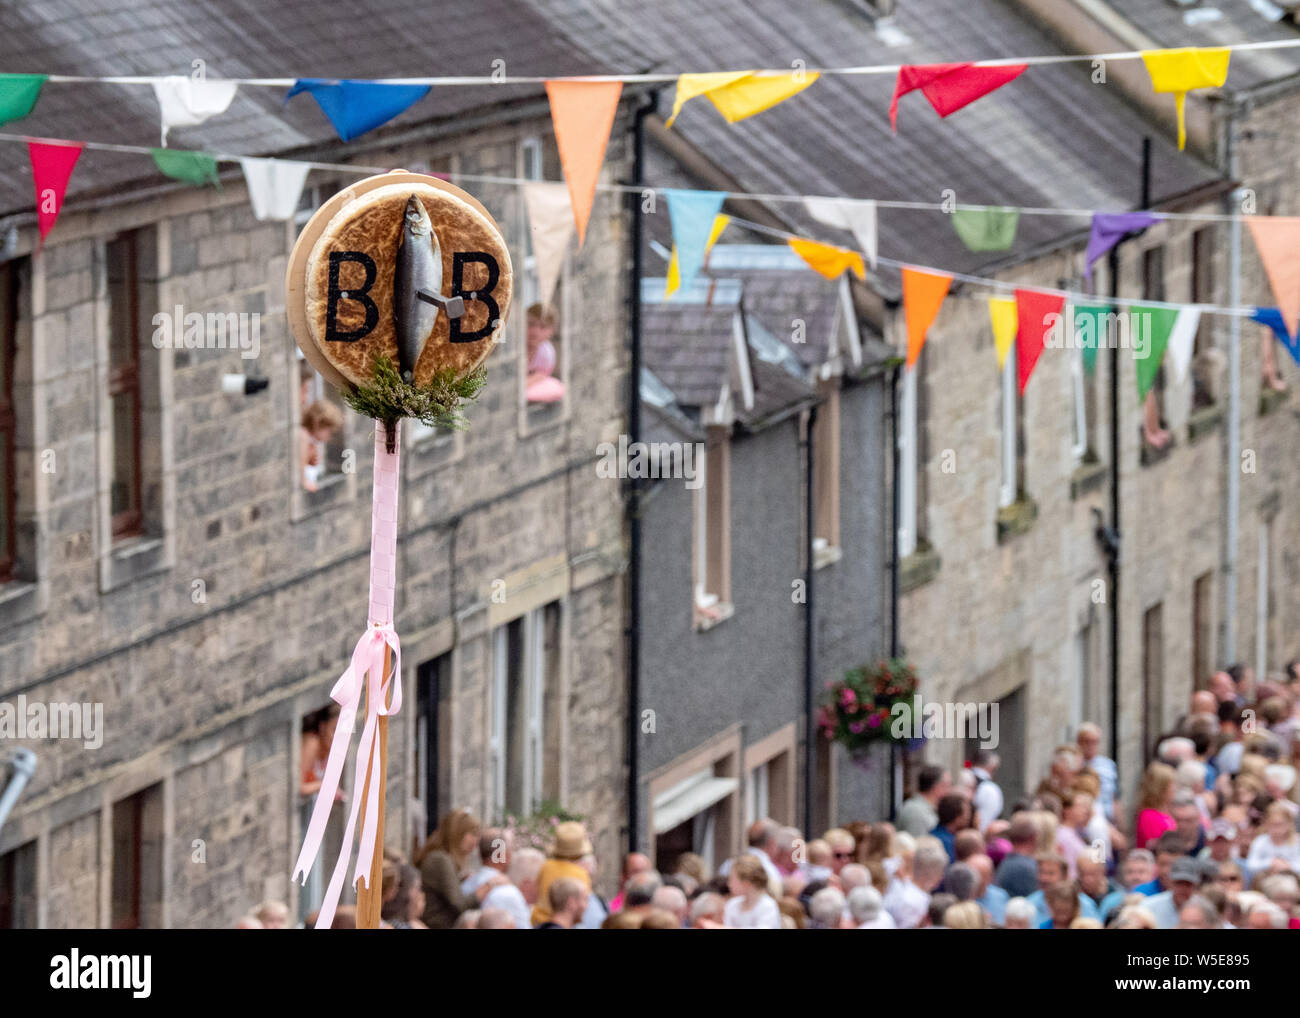 Langholm, Dumfries and Galloway, Scotland, UK. 26th July 2019. The Barley Bannock is held aloft during the walk up the Kirk Wynd. Stock Photo